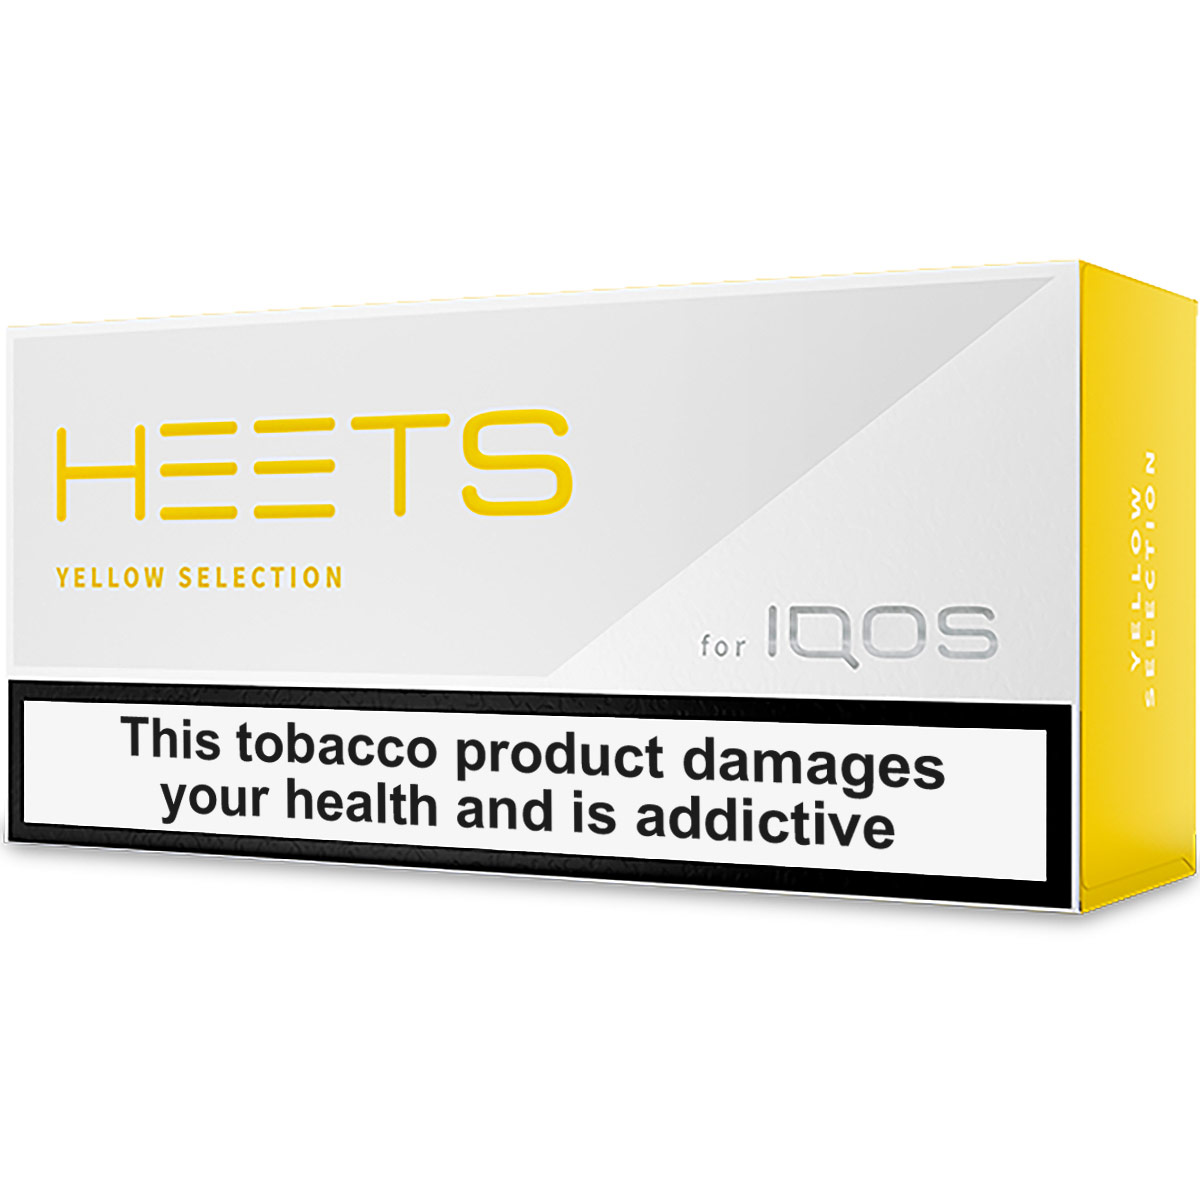 Heets - Yellow Selection (Central Asia)